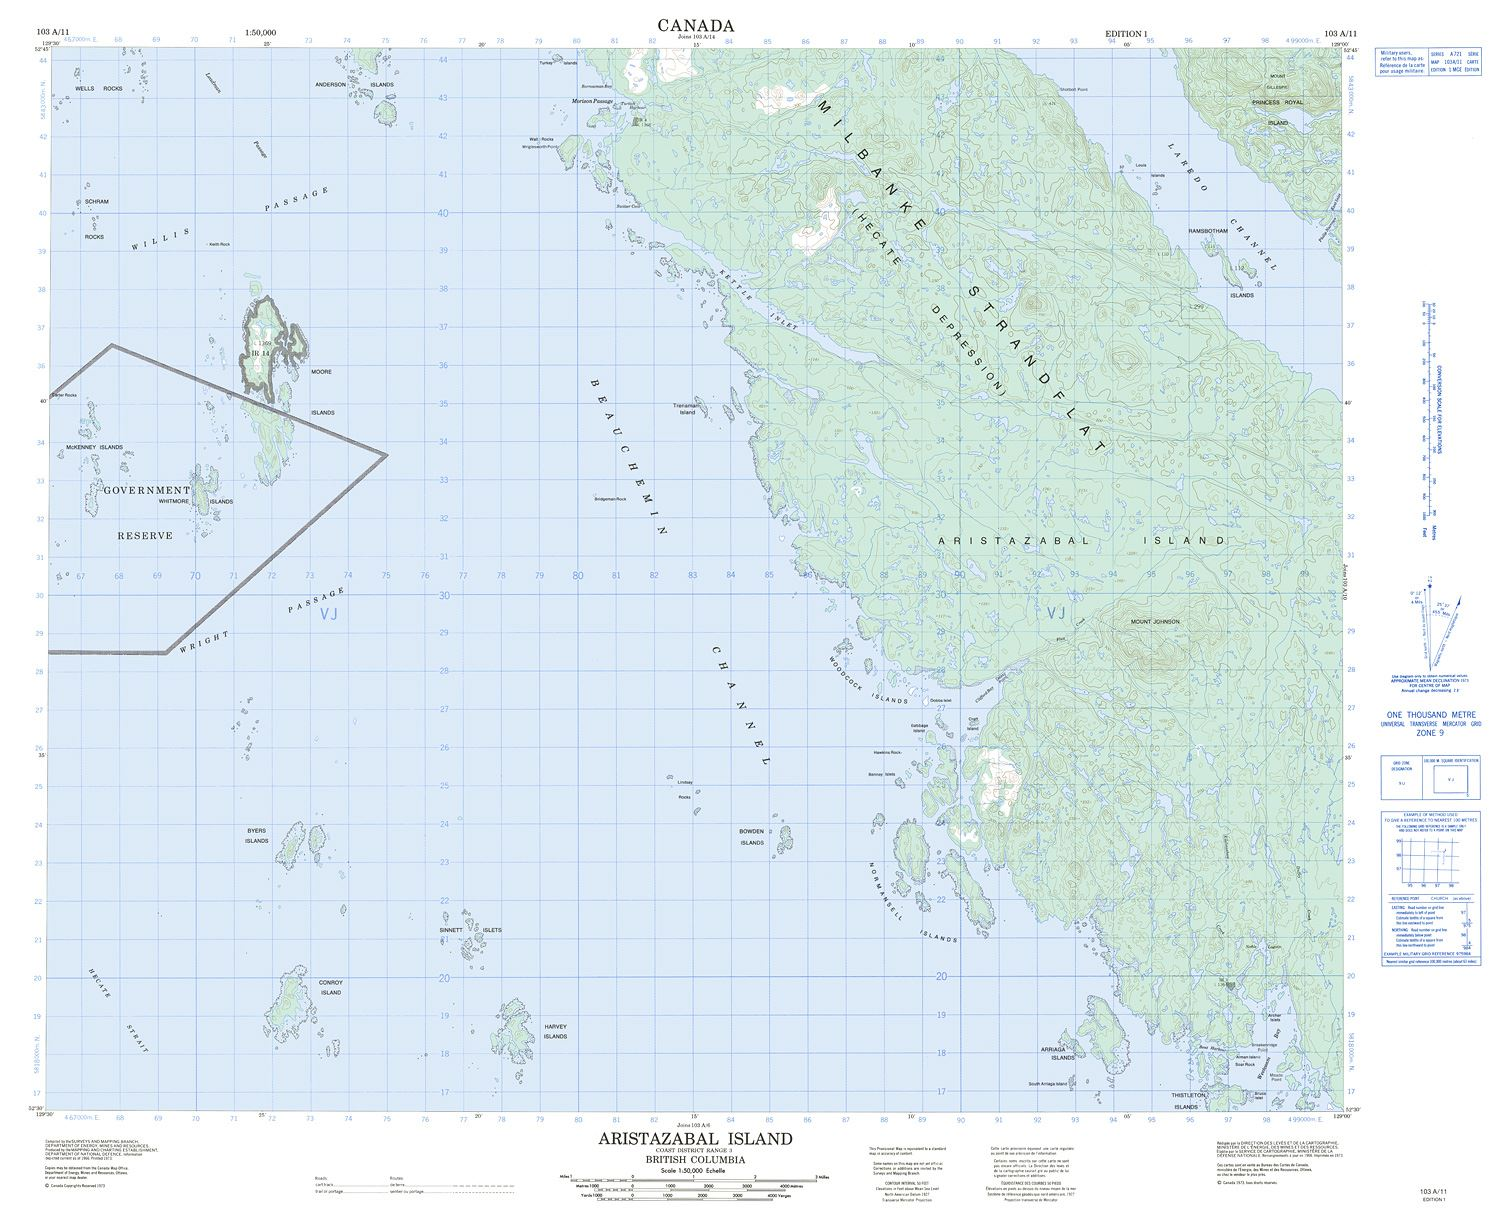 103a11 Aristazabal Island Topographic Map